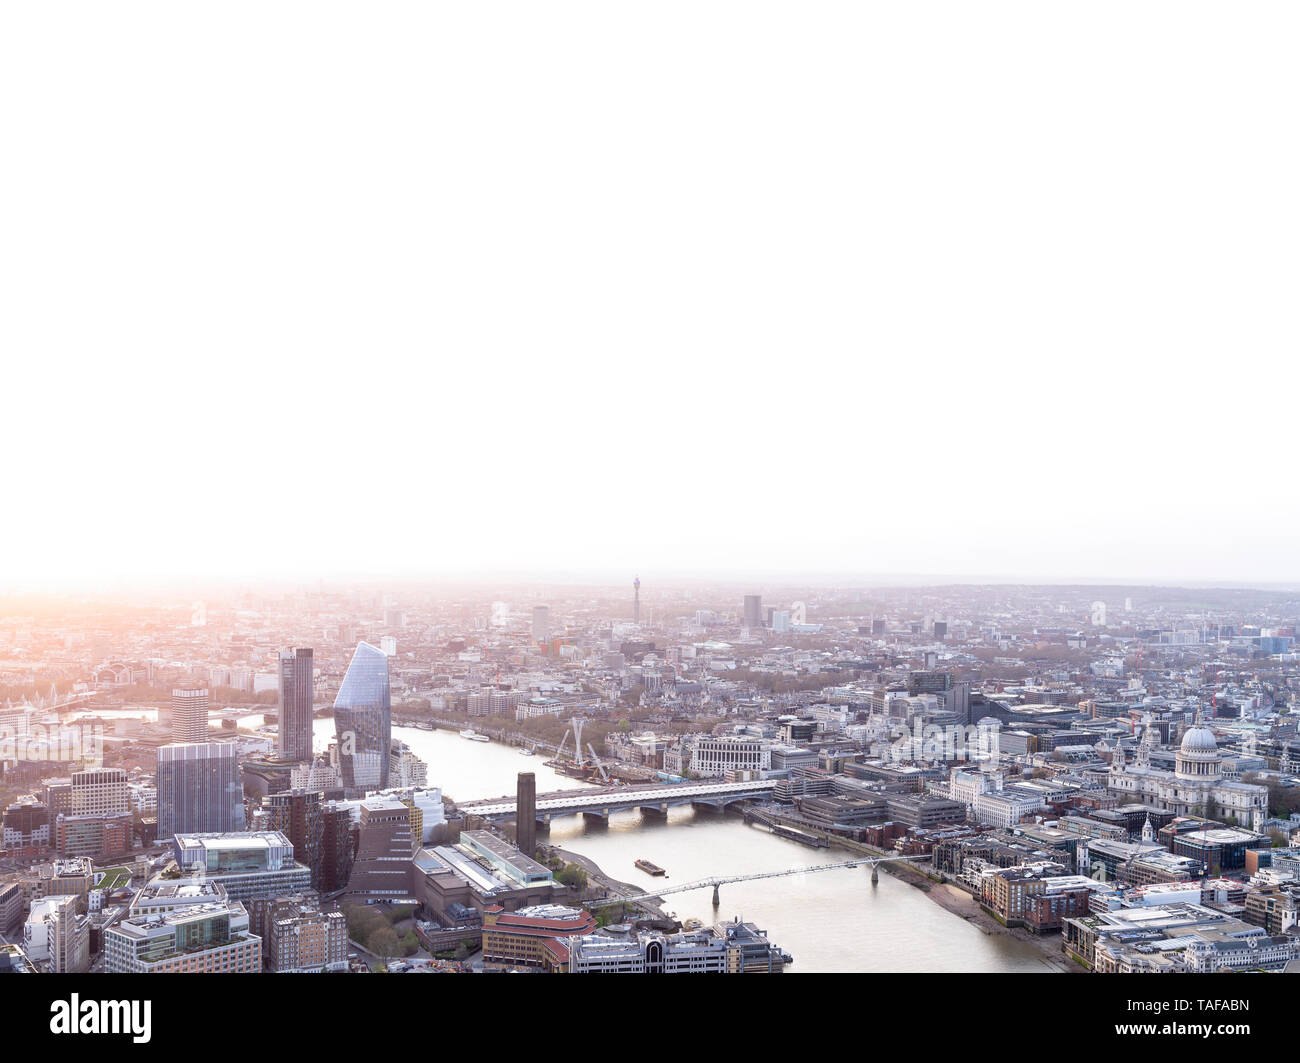 Aerial cityscape of London at sunset - Stock Image